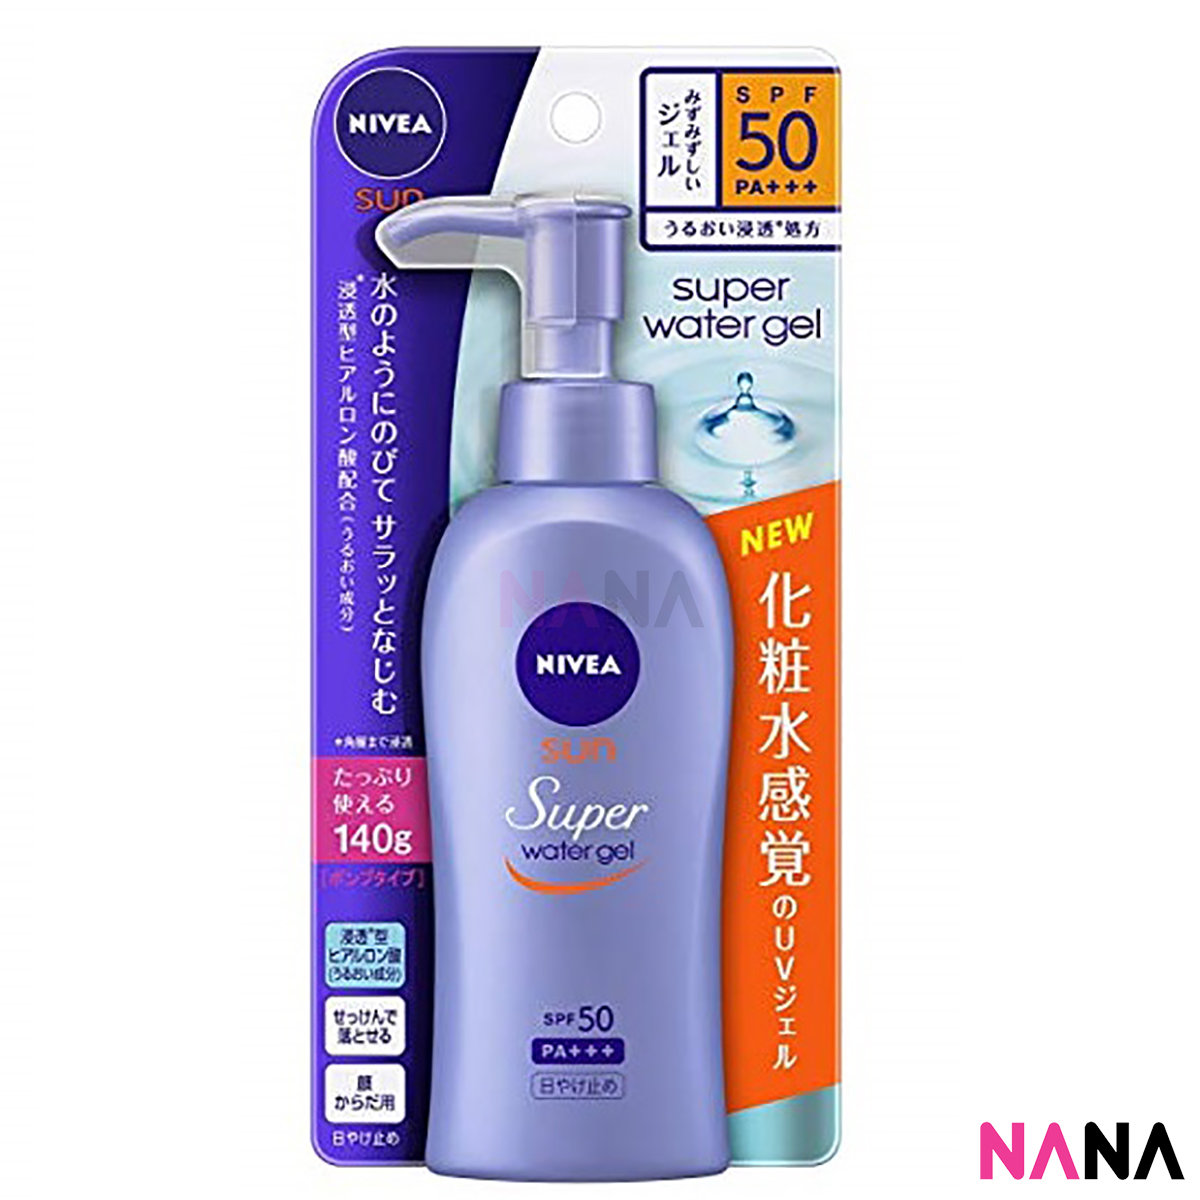 Super Water Gel Sunscreen SPF50 PA+++ 140g